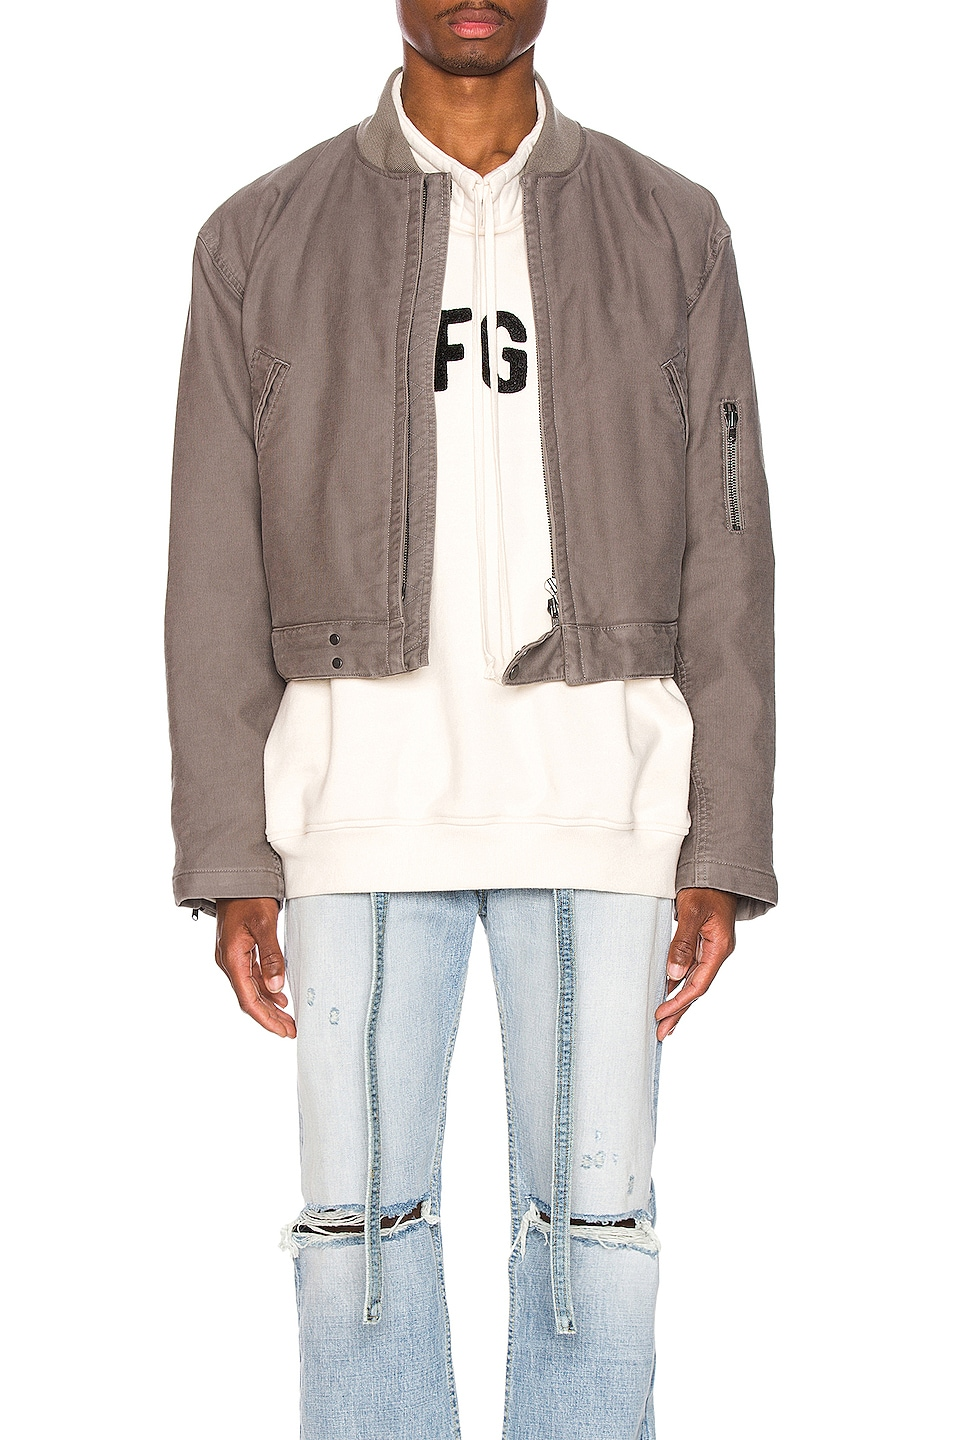 Fear of God 6th Collection Bomber Jacket God Grey hot sale